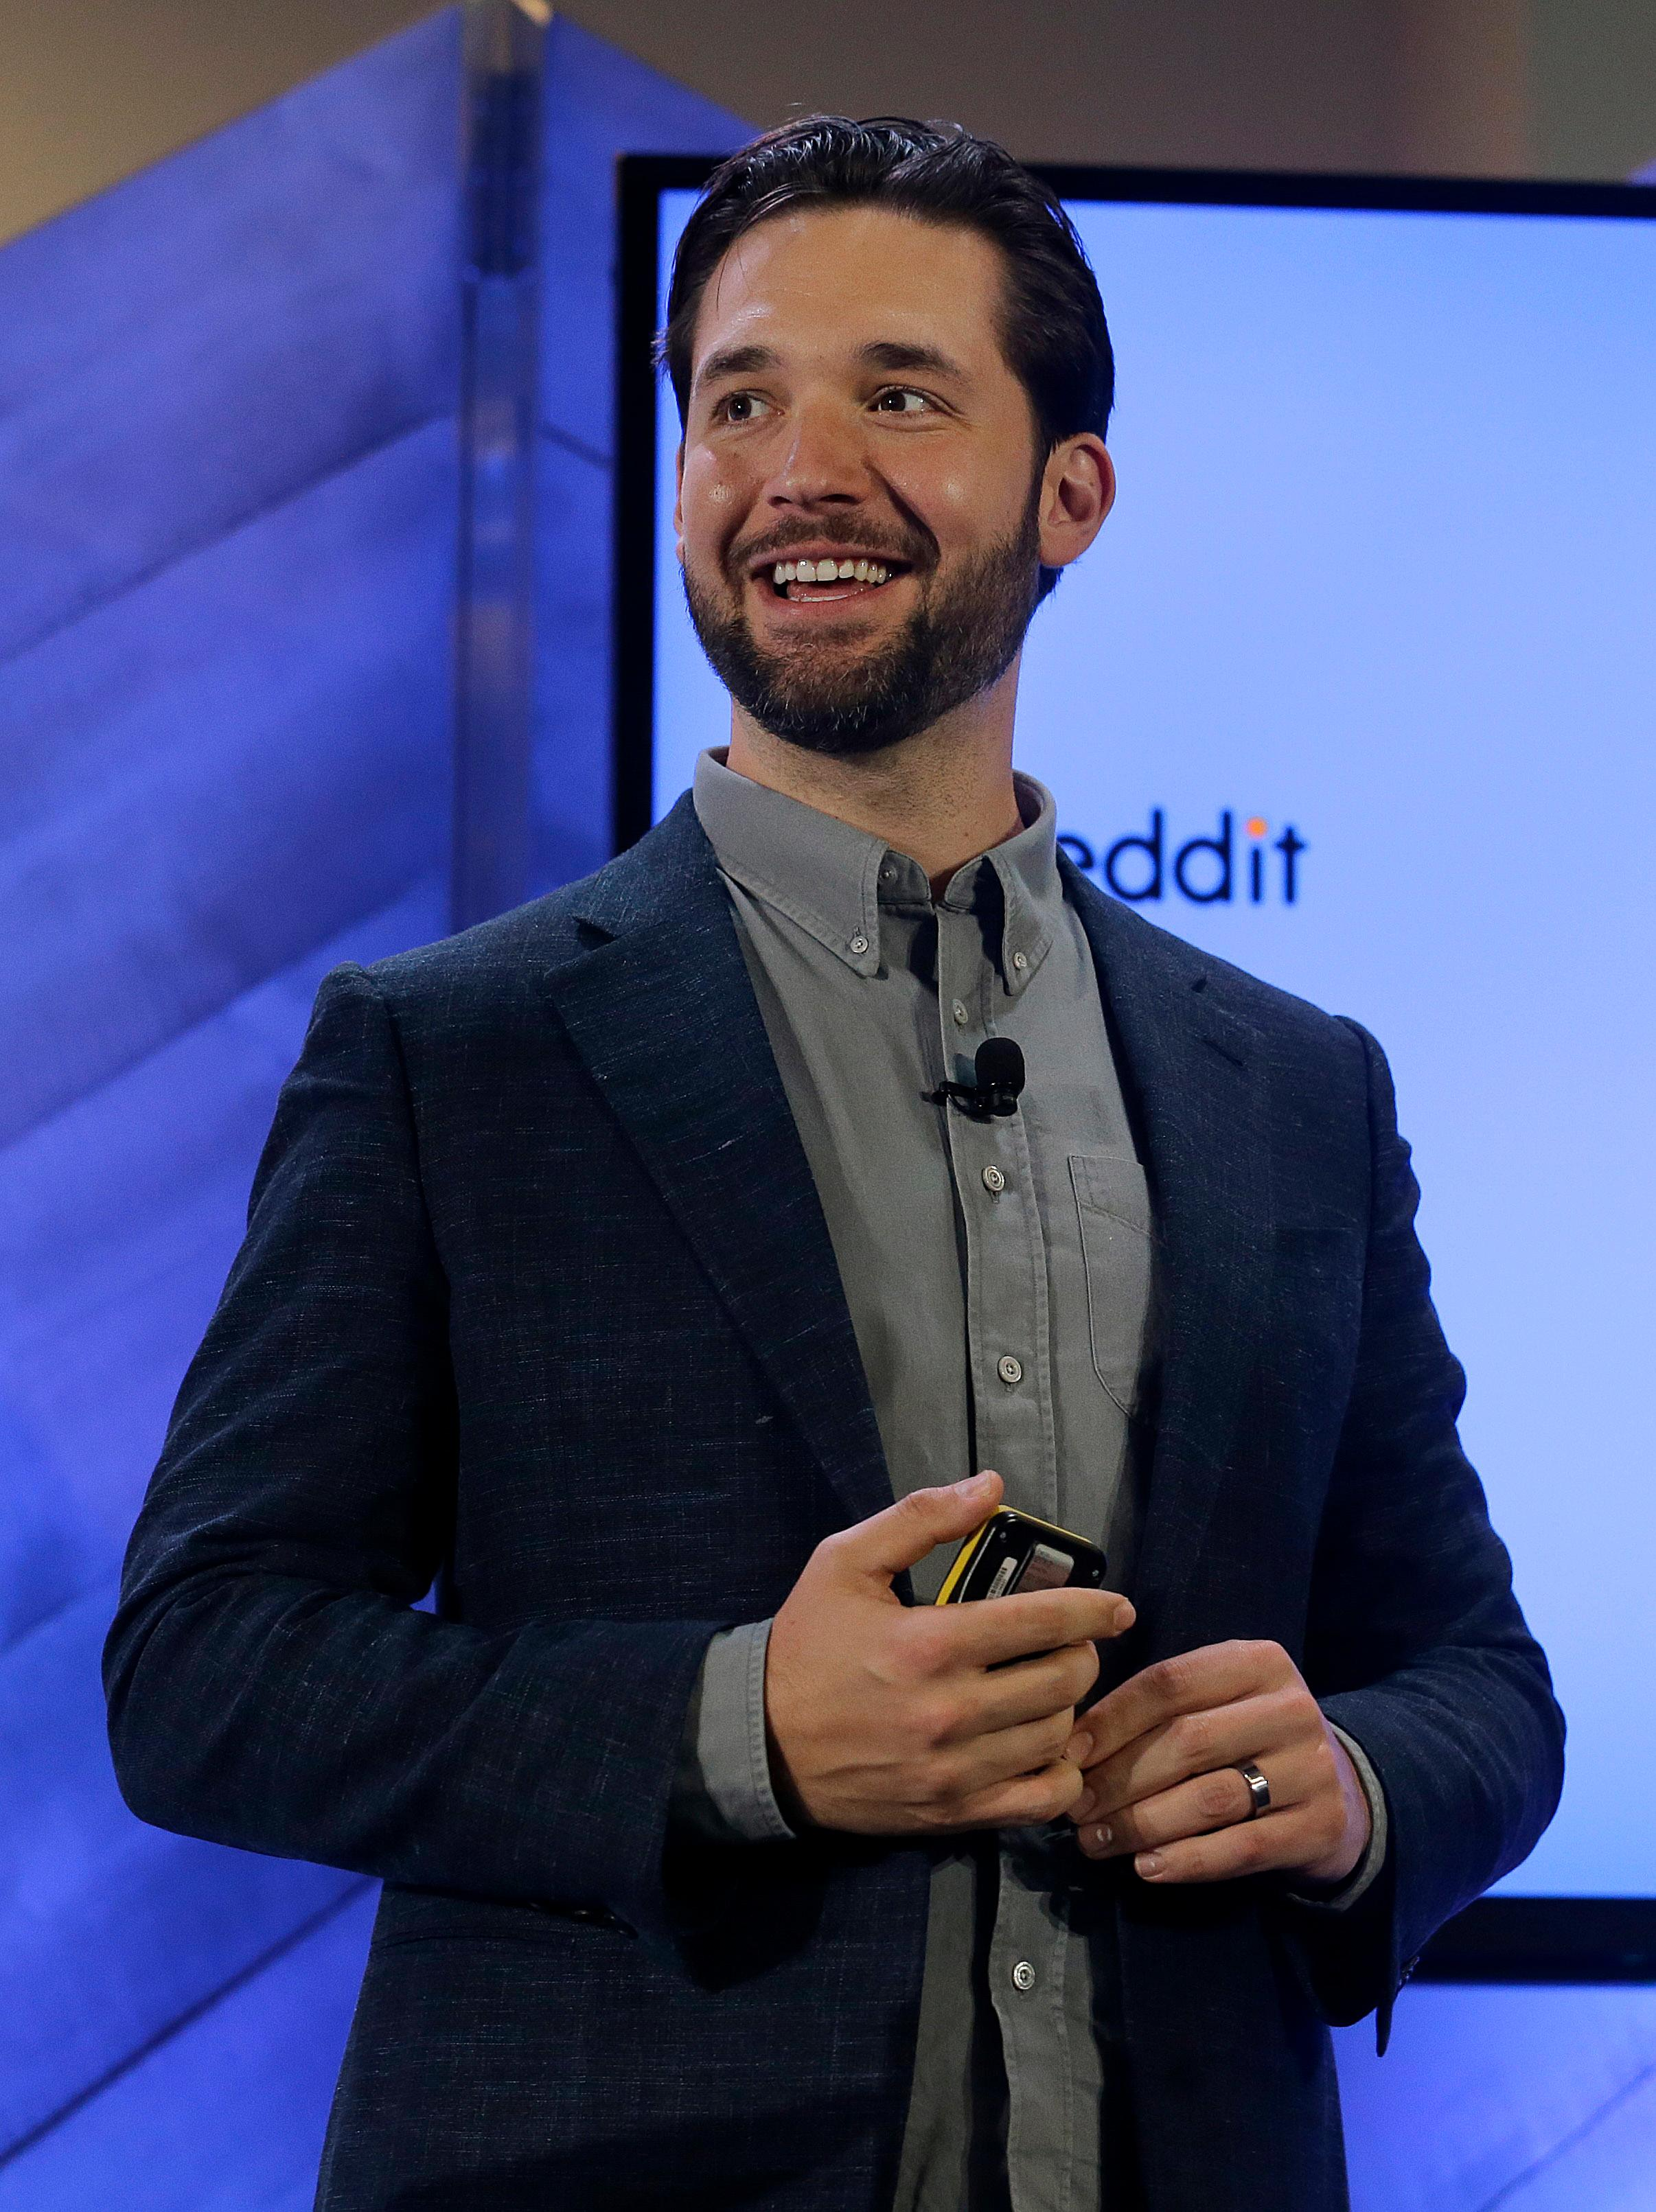 Alexis Ohanian, co-founder of Reddit, speaks at a Microsoft event in San Francisco, Wednesday, Dec. 13, 2017. Microsoft rolled out new features on its Bing search engine powered by artificial intelligence, including one that summarizes the two opposing sides of contentious questions, and another that measures how many reputable sources are behind a given answer. (AP Photo/Jeff Chiu)